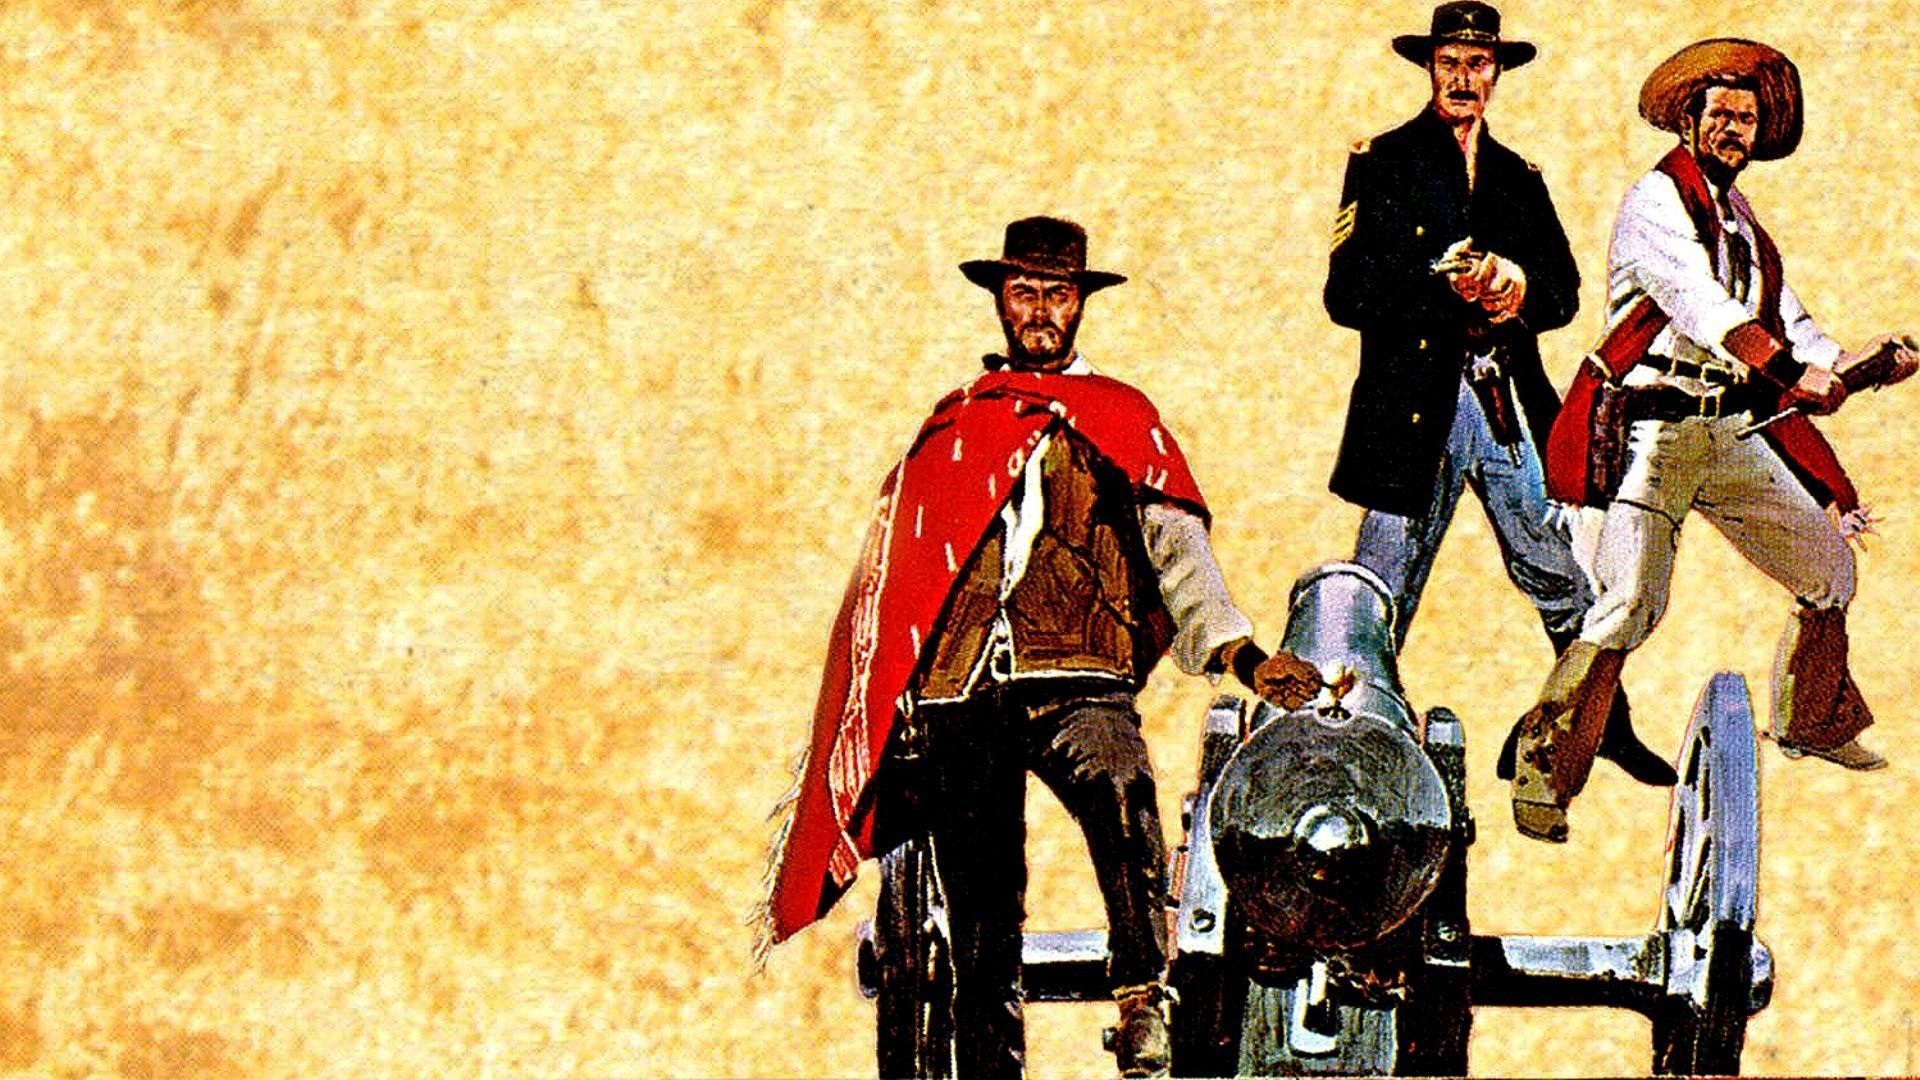 The Good The Bad And The Ugly Wallpaper